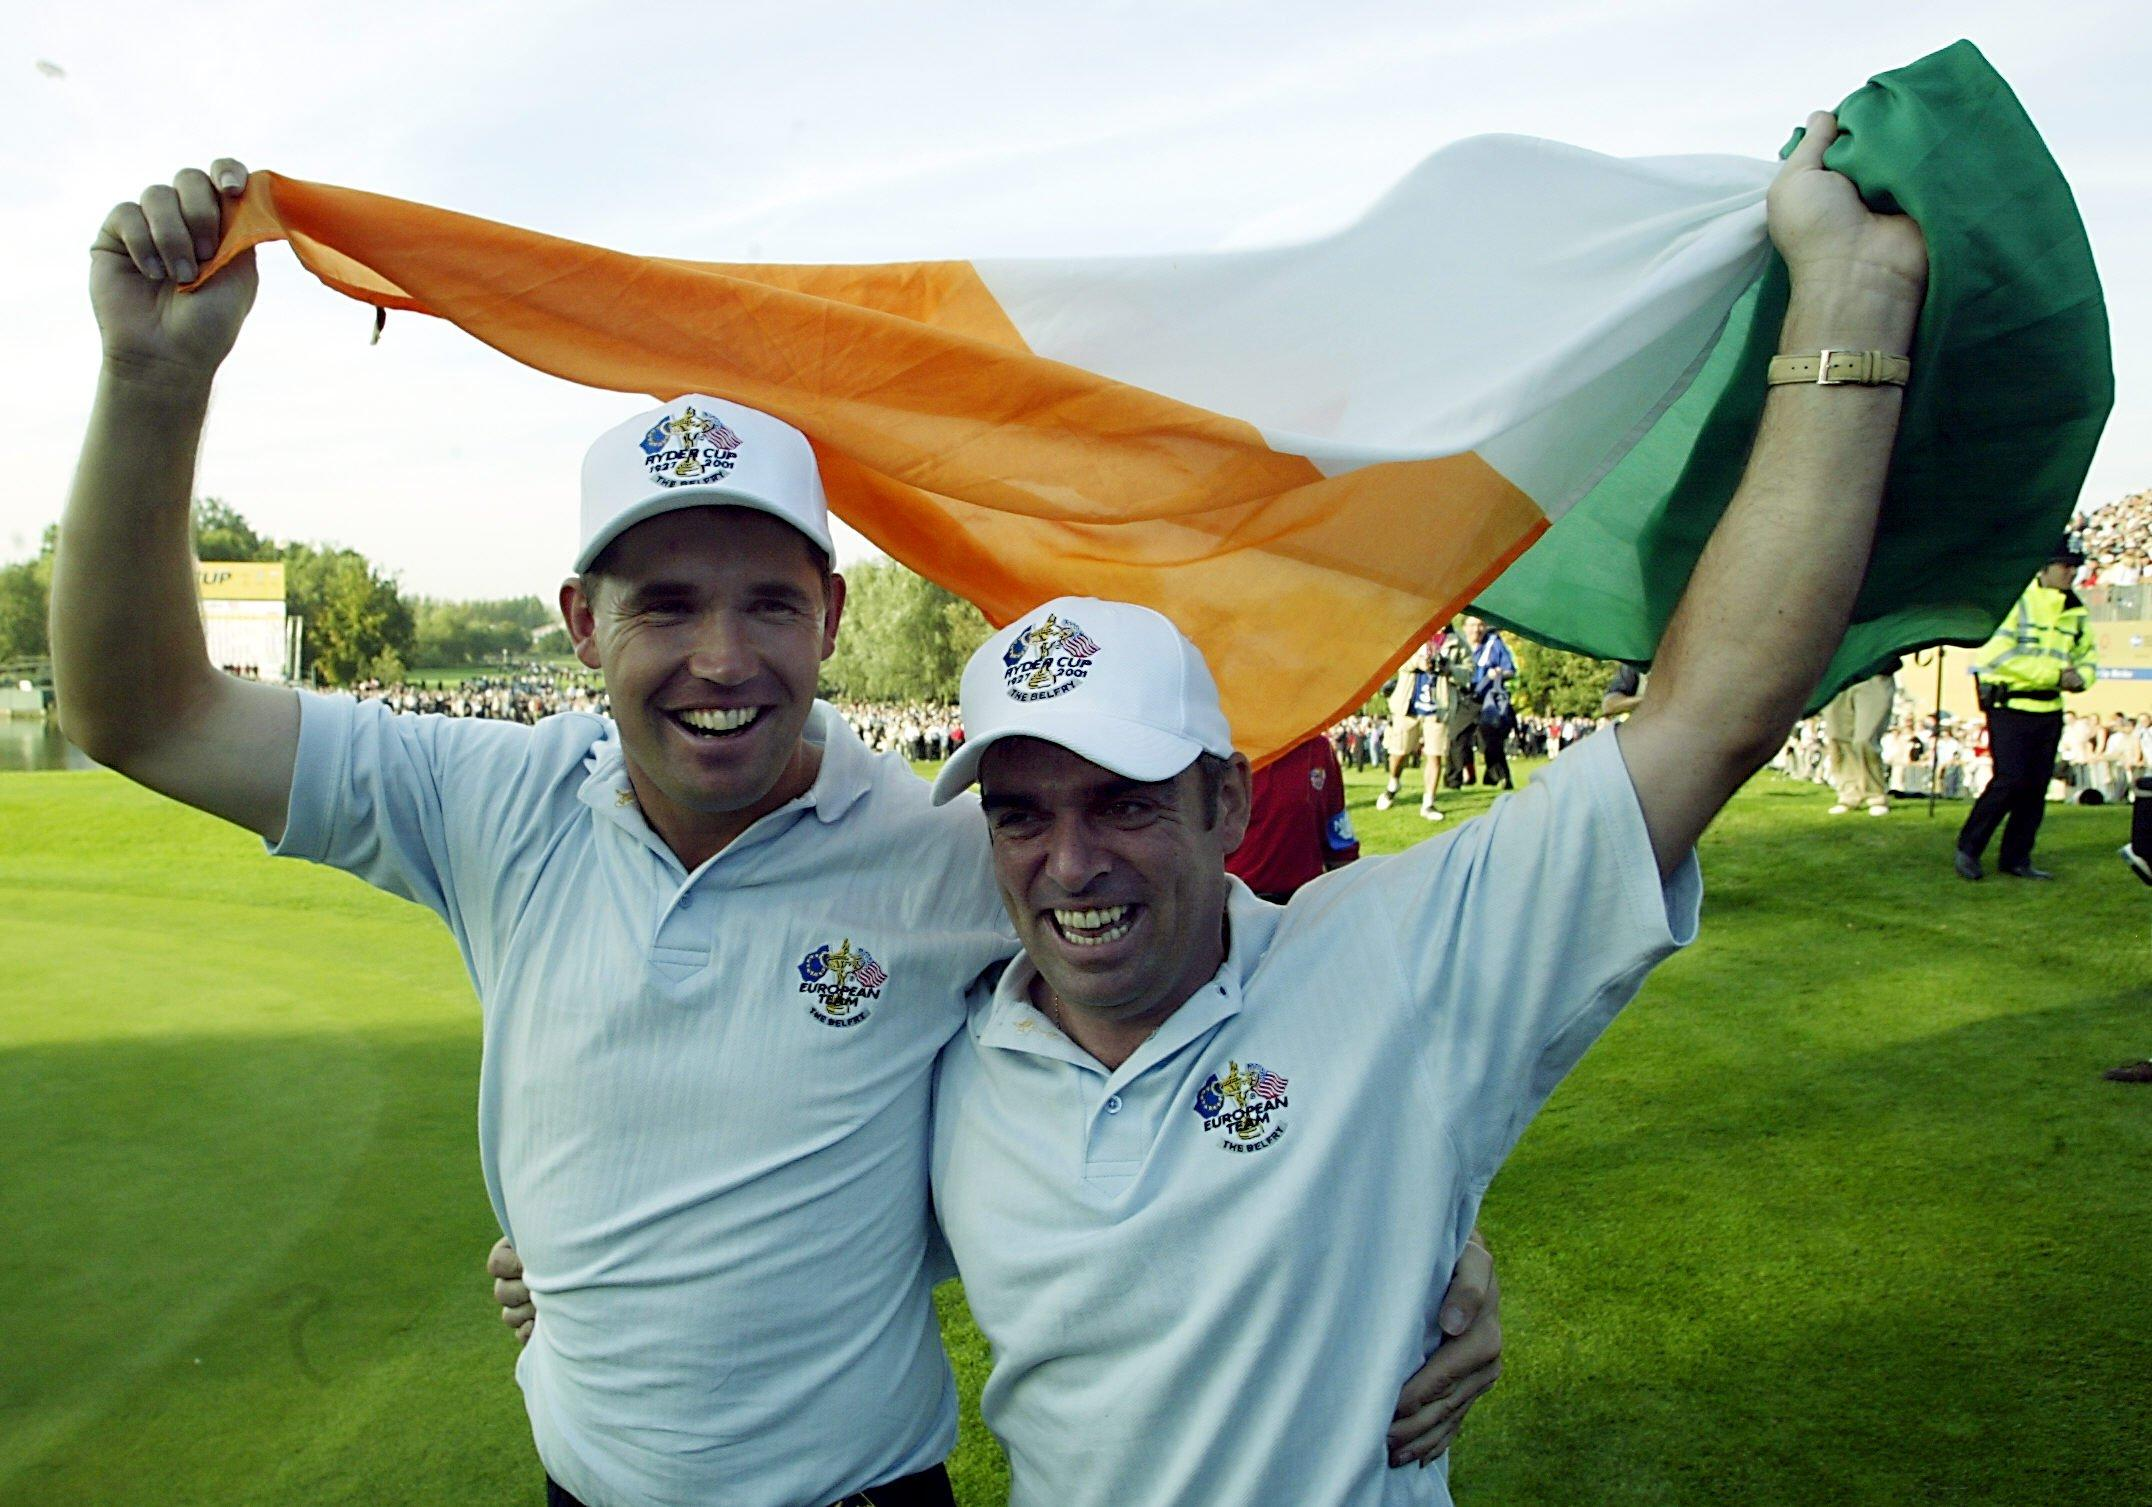 Padraig Harrington celebrates winning the 2002 Ryder Cup with his pal Paul McGinley